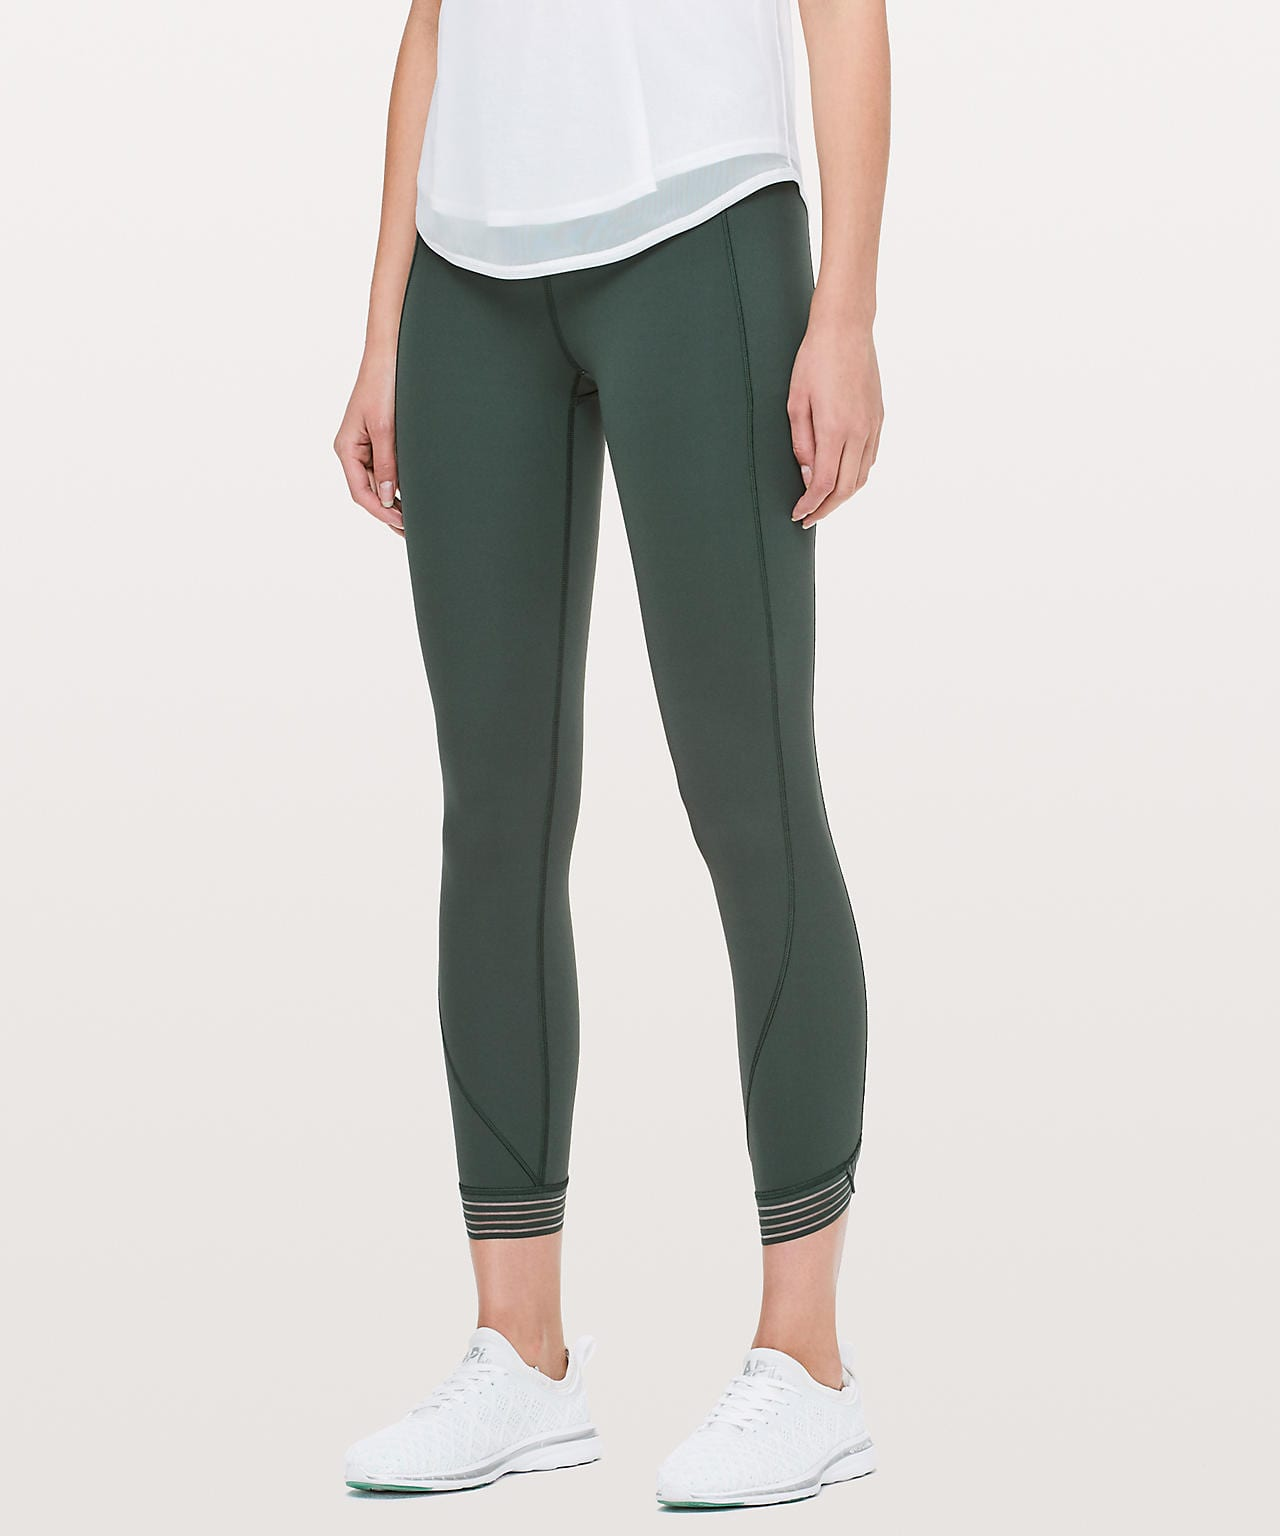 Find Focus Tight, Lululemon Upload, Deep Ivy